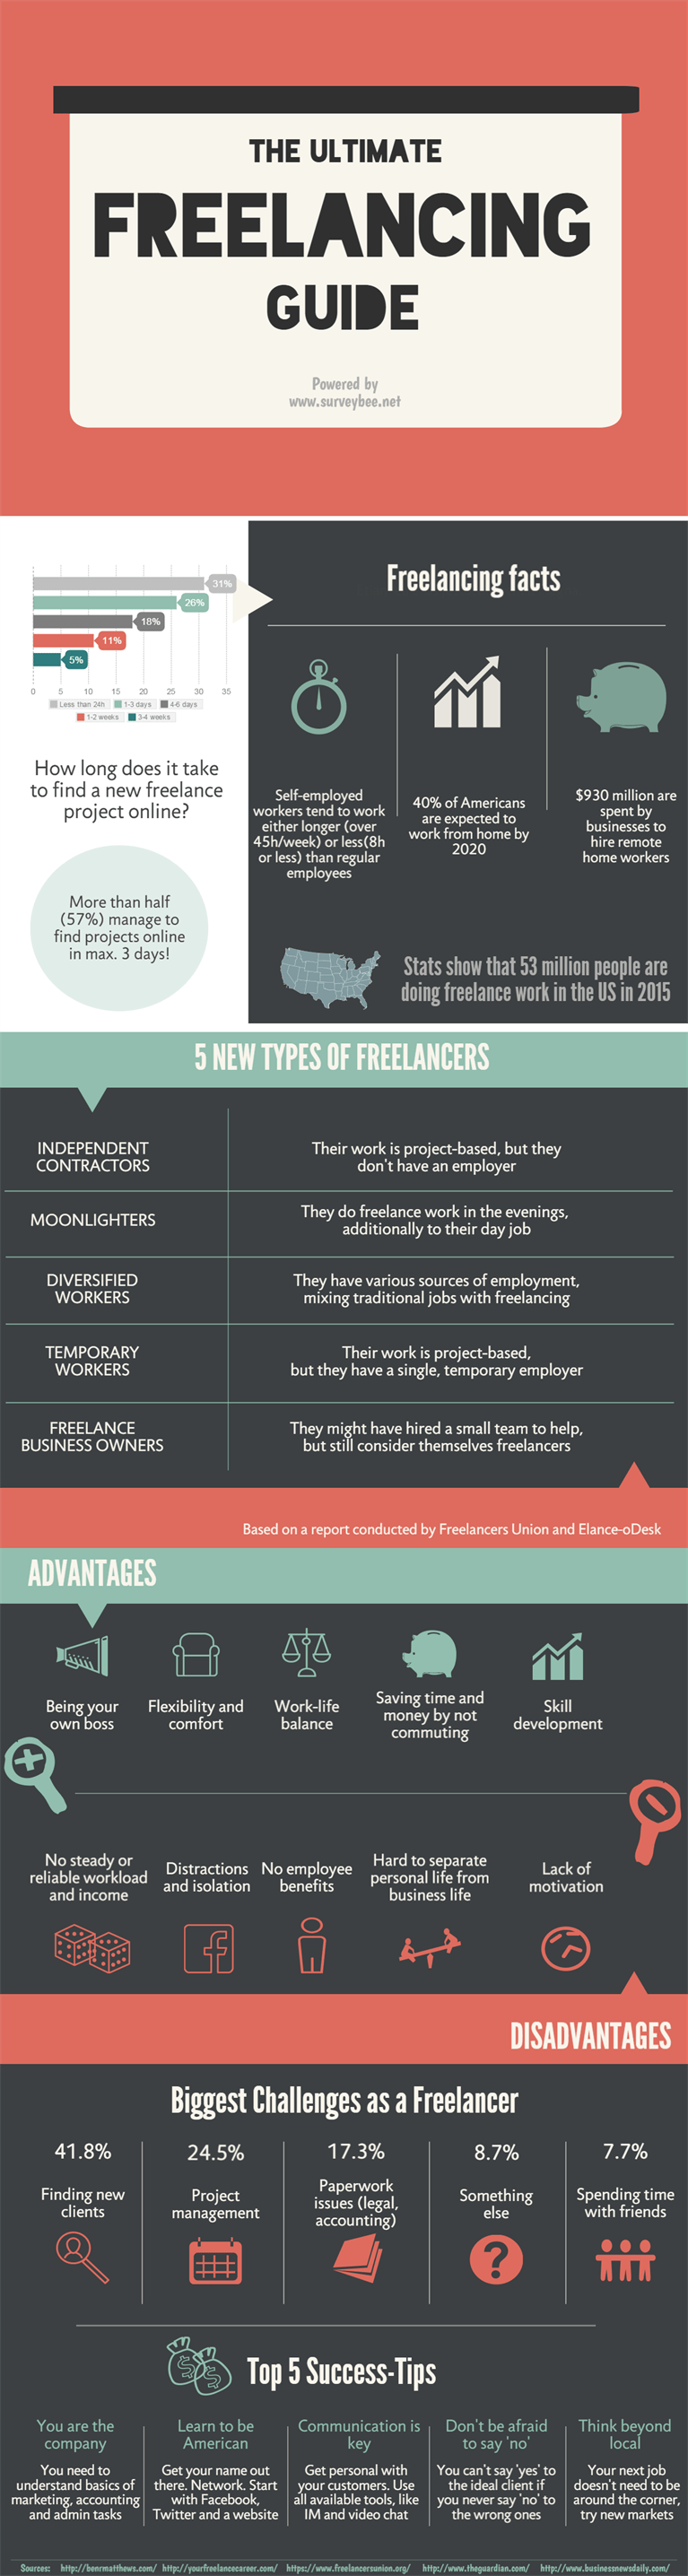 The_Ultimate_Freelancing_Guide_767x2872